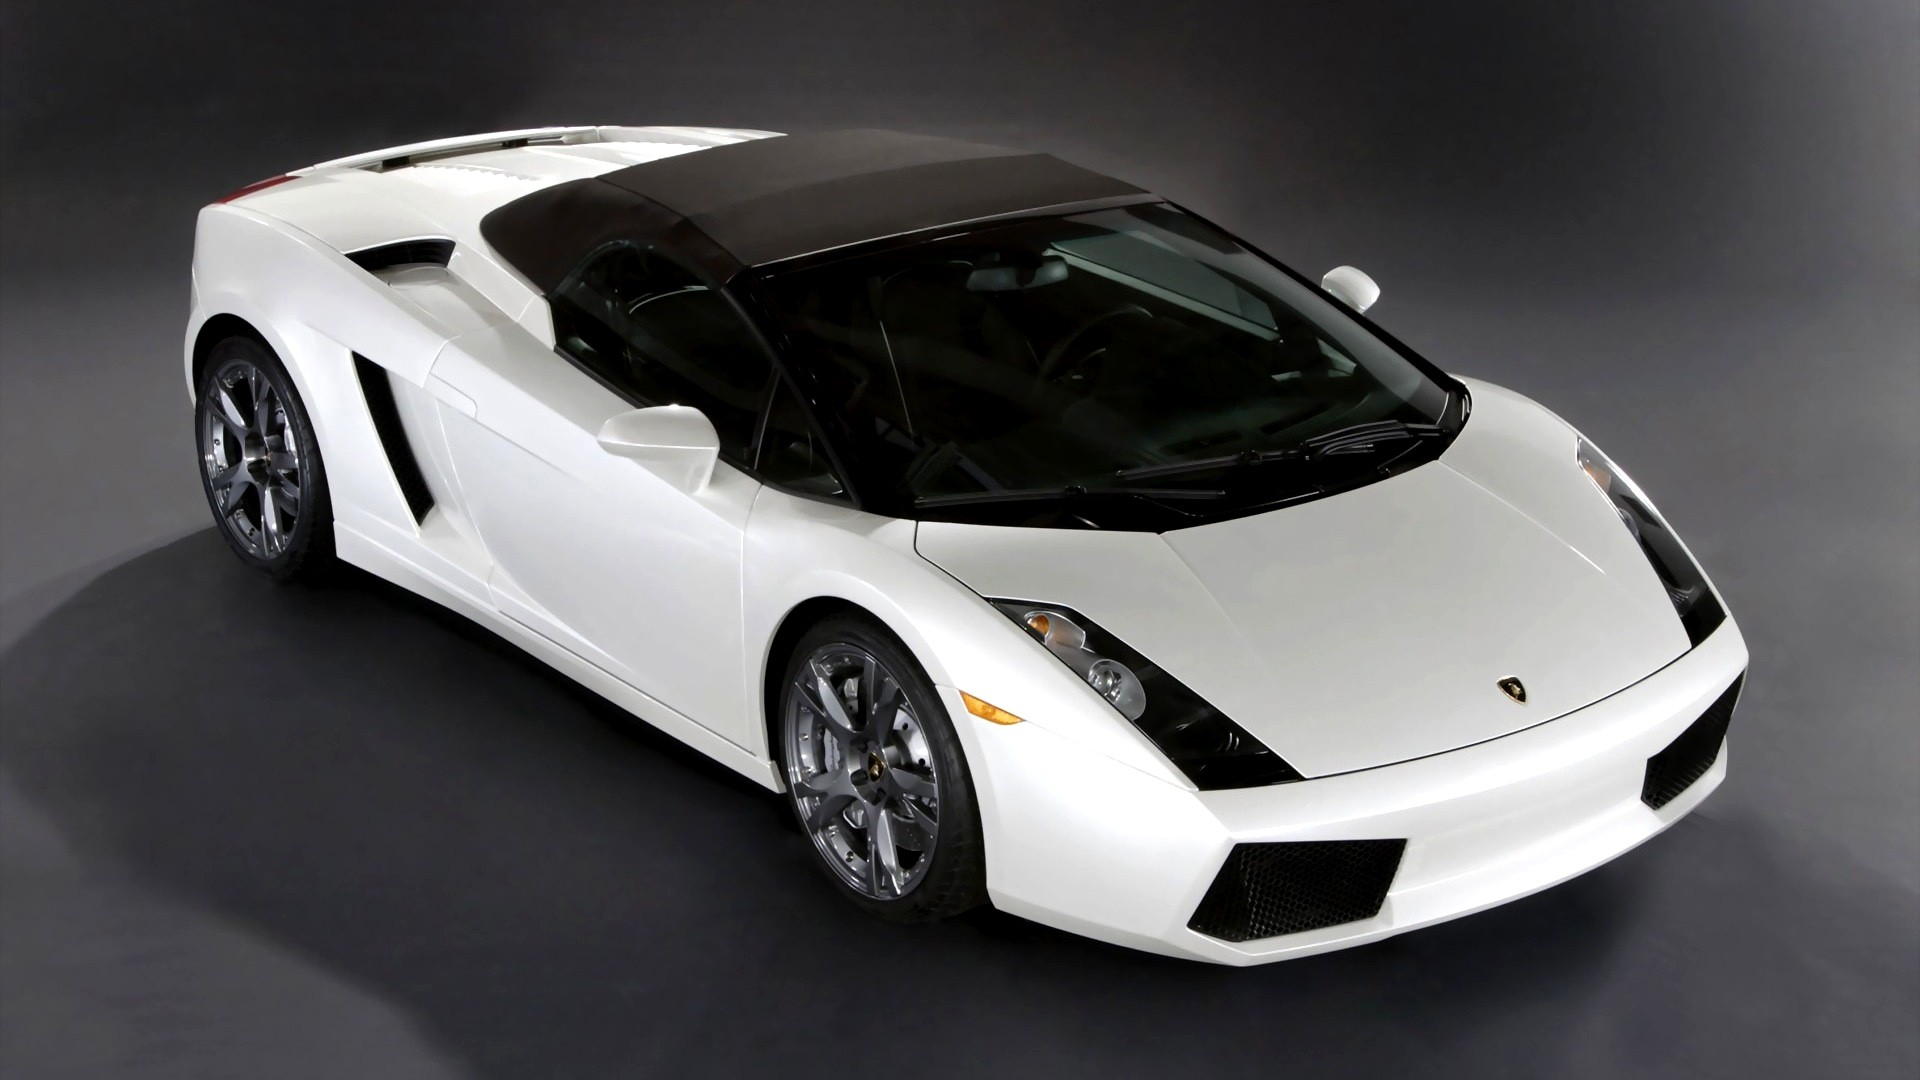 Lamborghini HD 1080p Wallpapers HD Wallpapers ID 9483